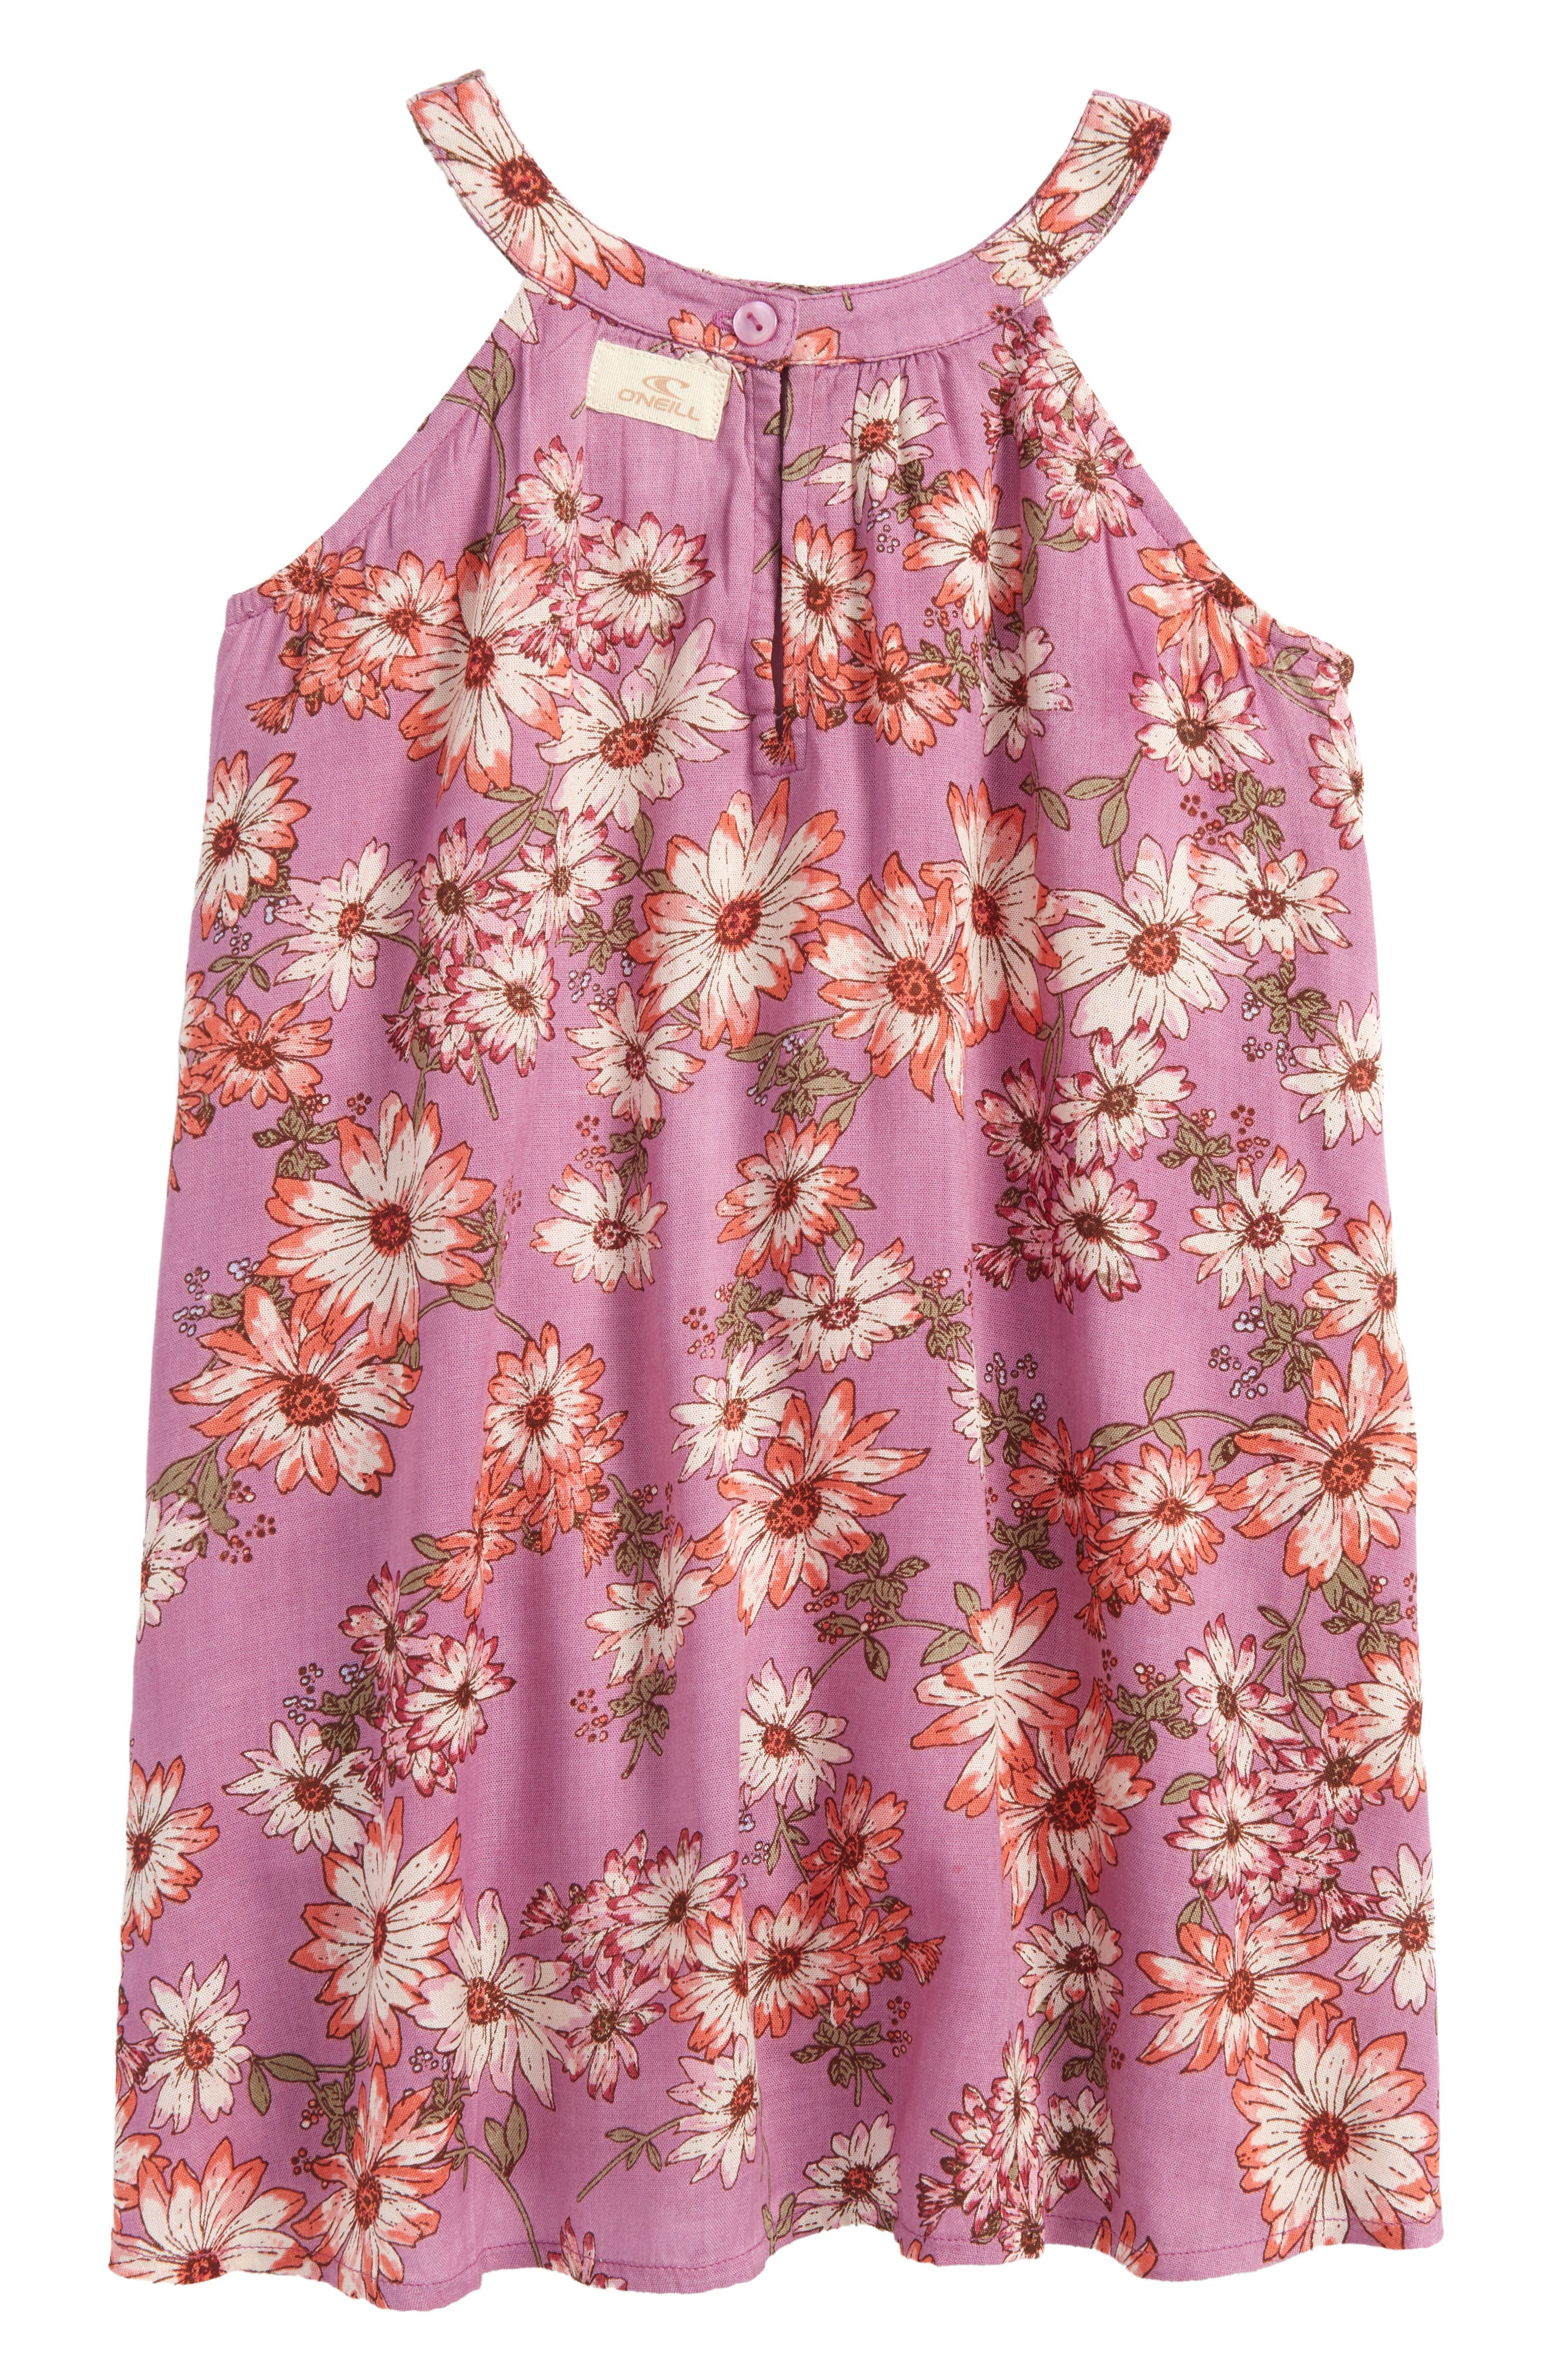 Sallie Floral Dress,                             Alternate thumbnail 3, color,